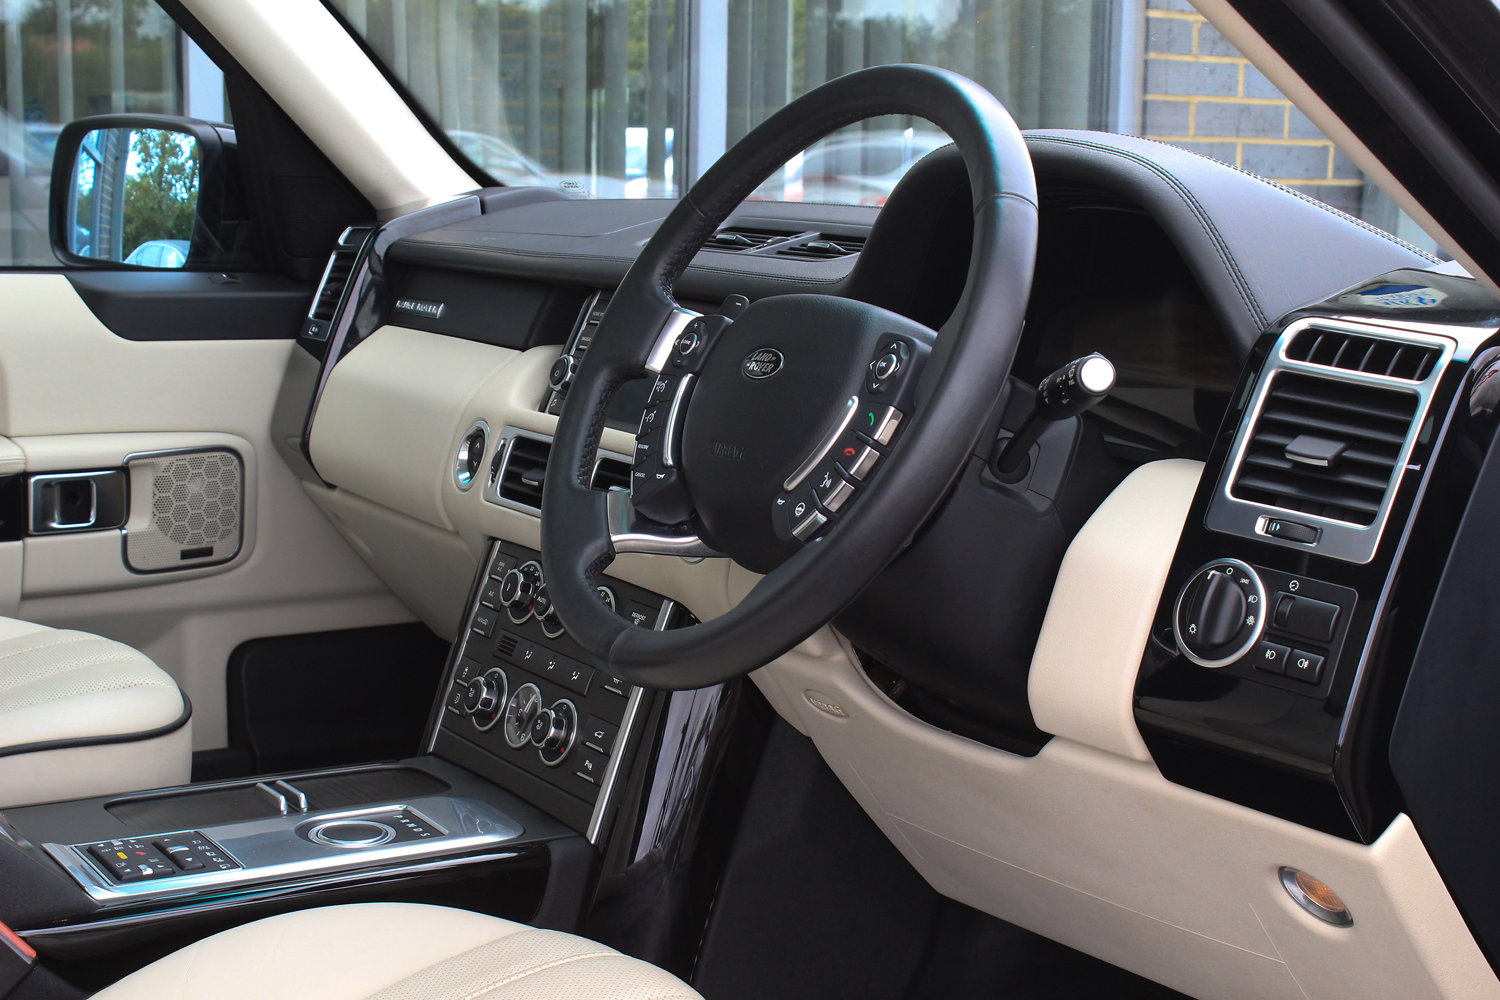 2012 62 RANGE ROVER 4.4TDV8 WESTERMINSTER AUTO  For Sale (picture 5 of 6)